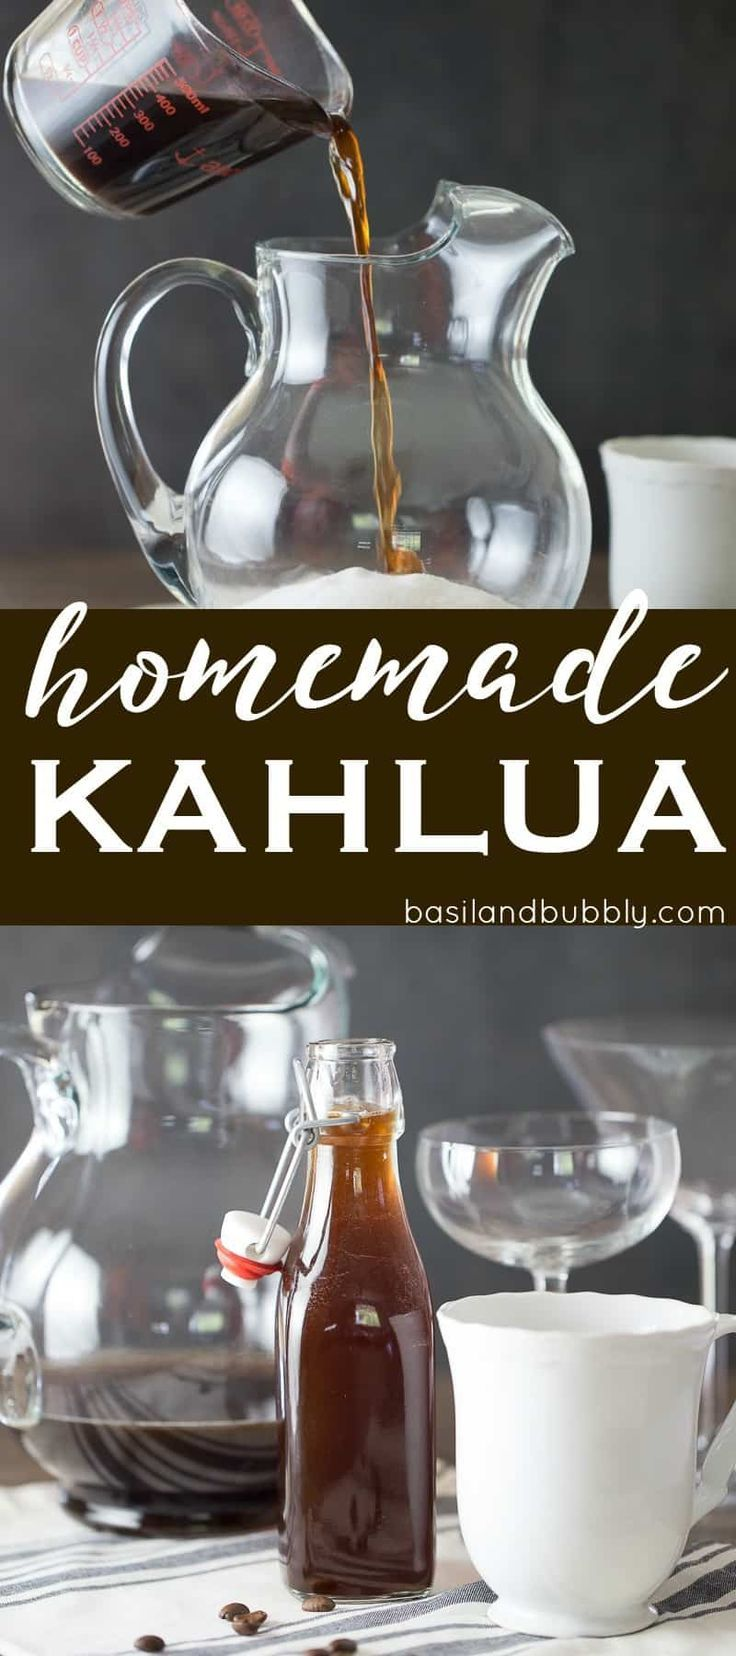 How to make the best homemade kahlua with rum, brewed coffee, and vanilla bean. Easy recipe, with option for using vodka or everclear instead of rum.